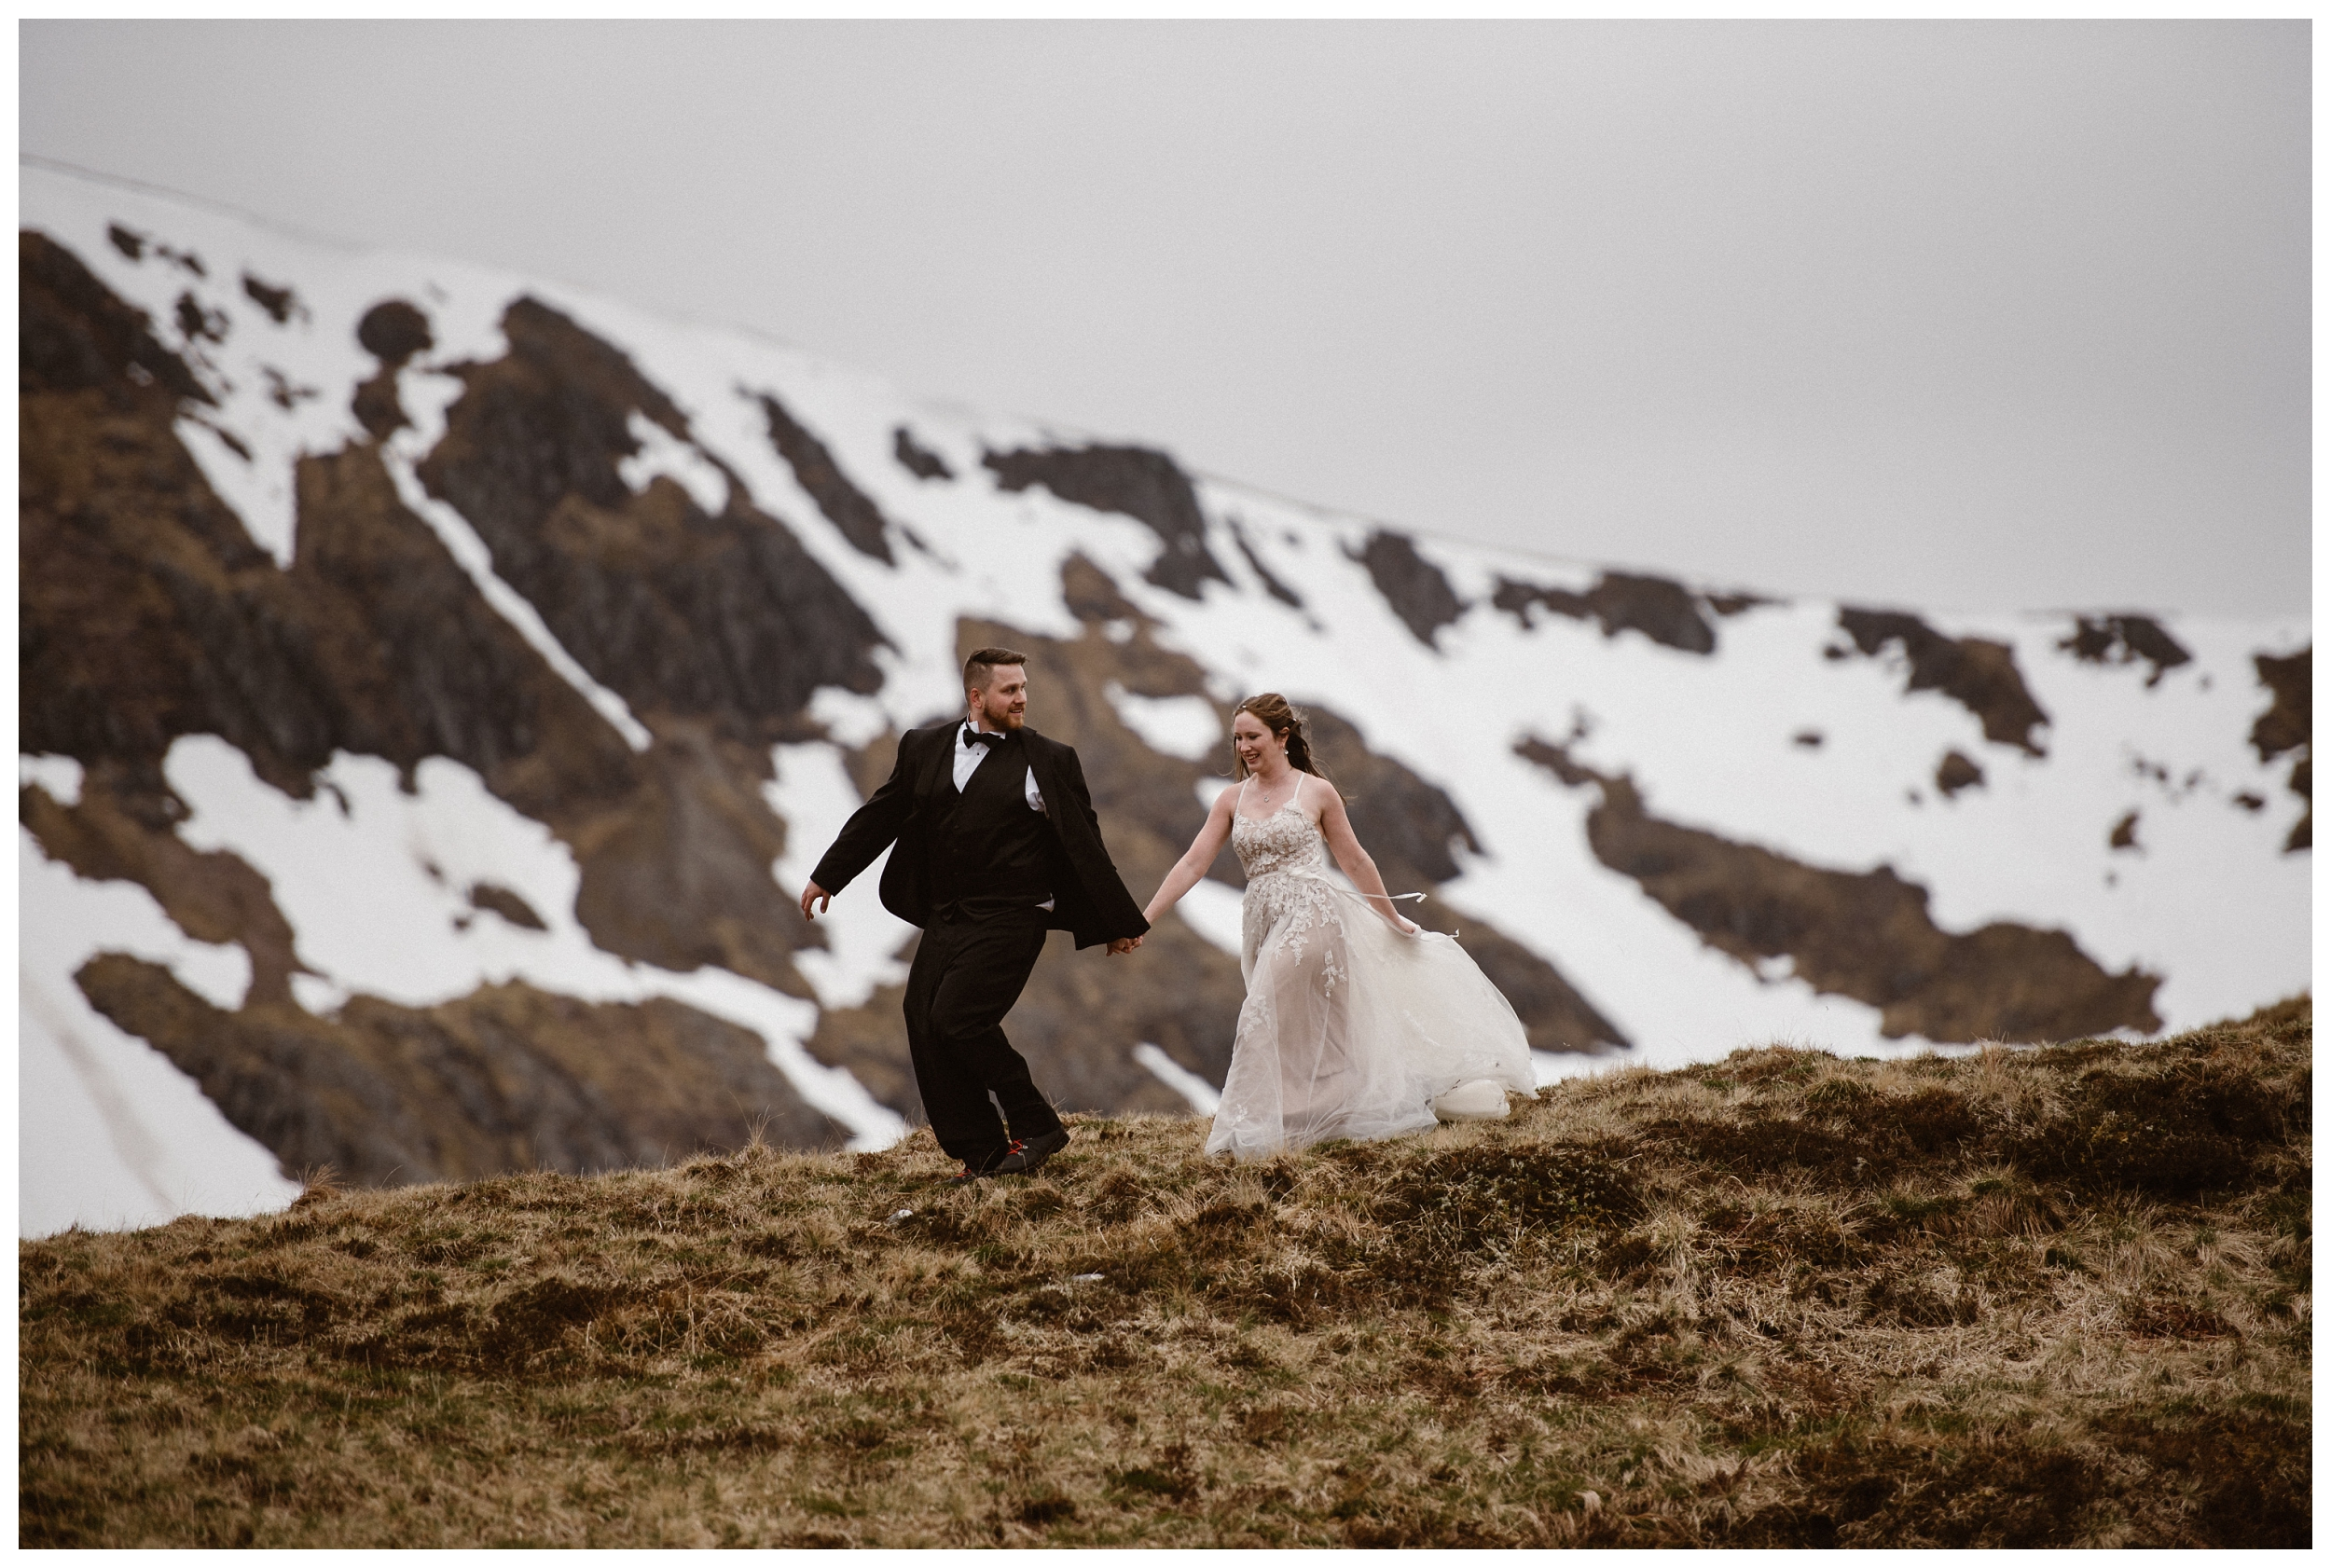 Early May is a great time to travel to Scotland and explore the Scottish Highlands, as Elissa and Daniel did for their adventure elopement. Photo by Maddie Mae, Adventure Instead.